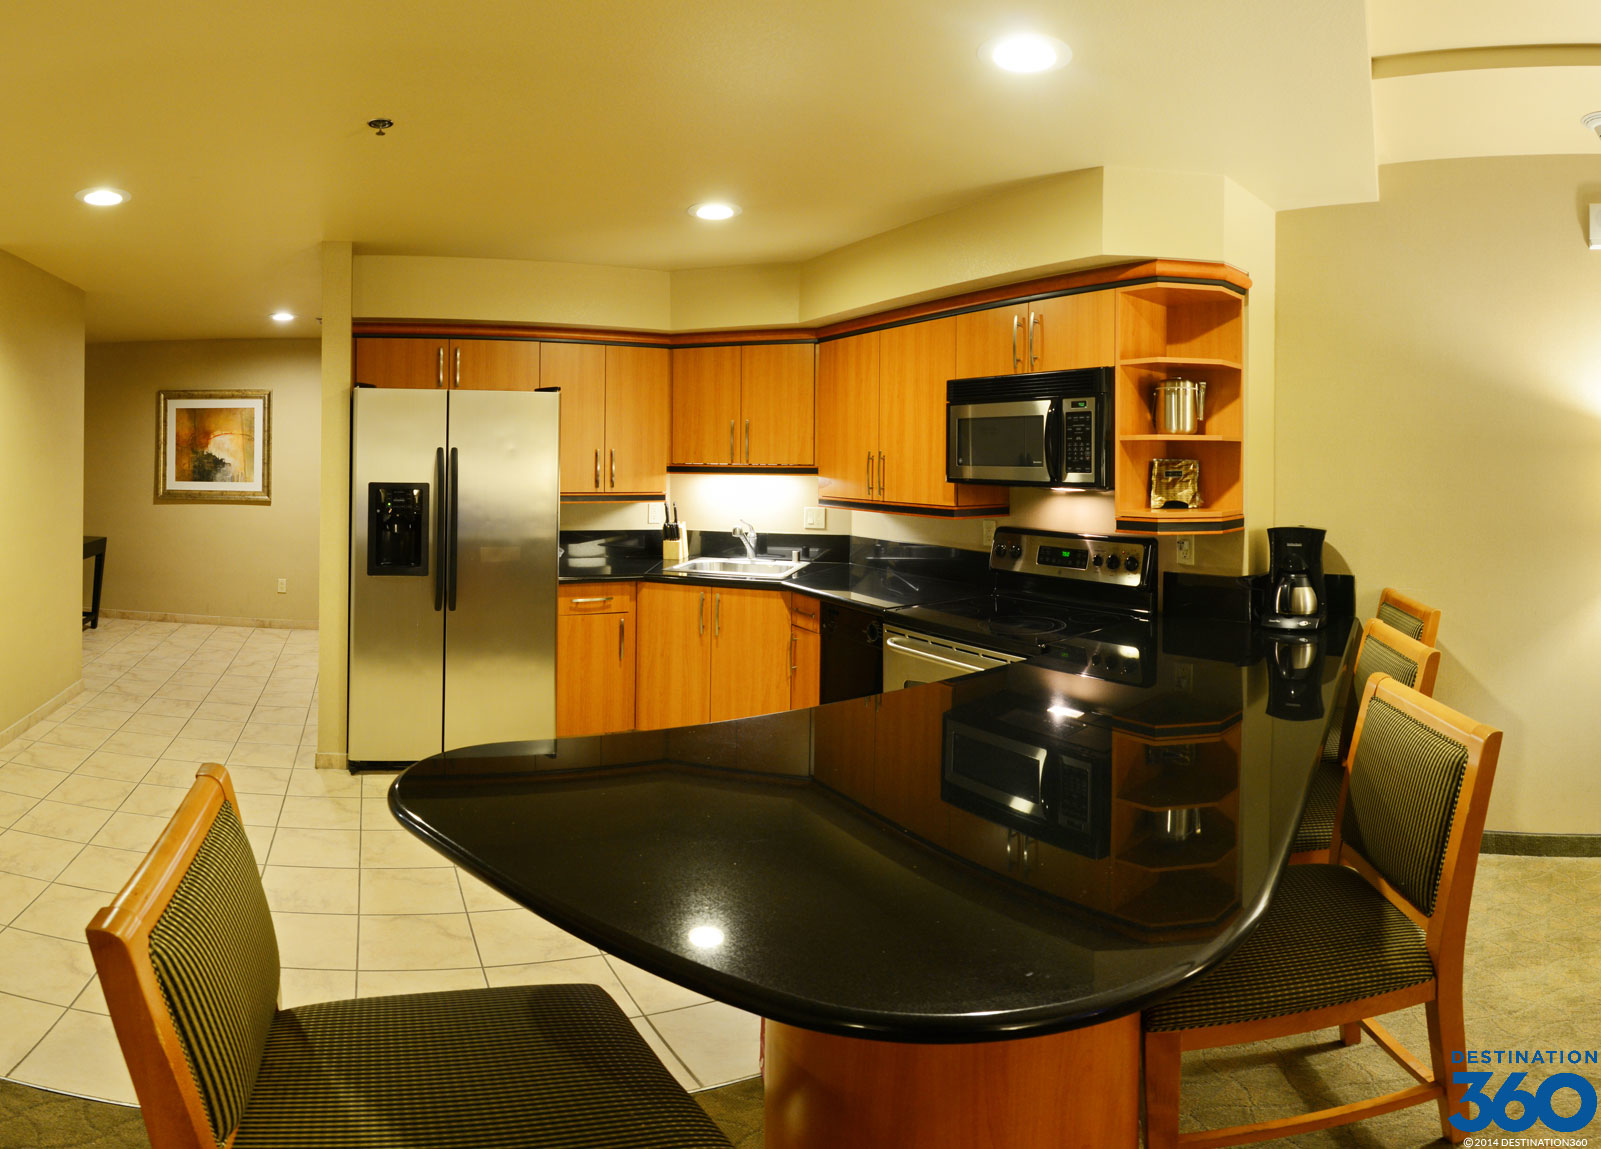 2 Bedroom Suites Las Vegas. 2 Bedroom Suites Las Vegas   2 Room Suites Las Vegas